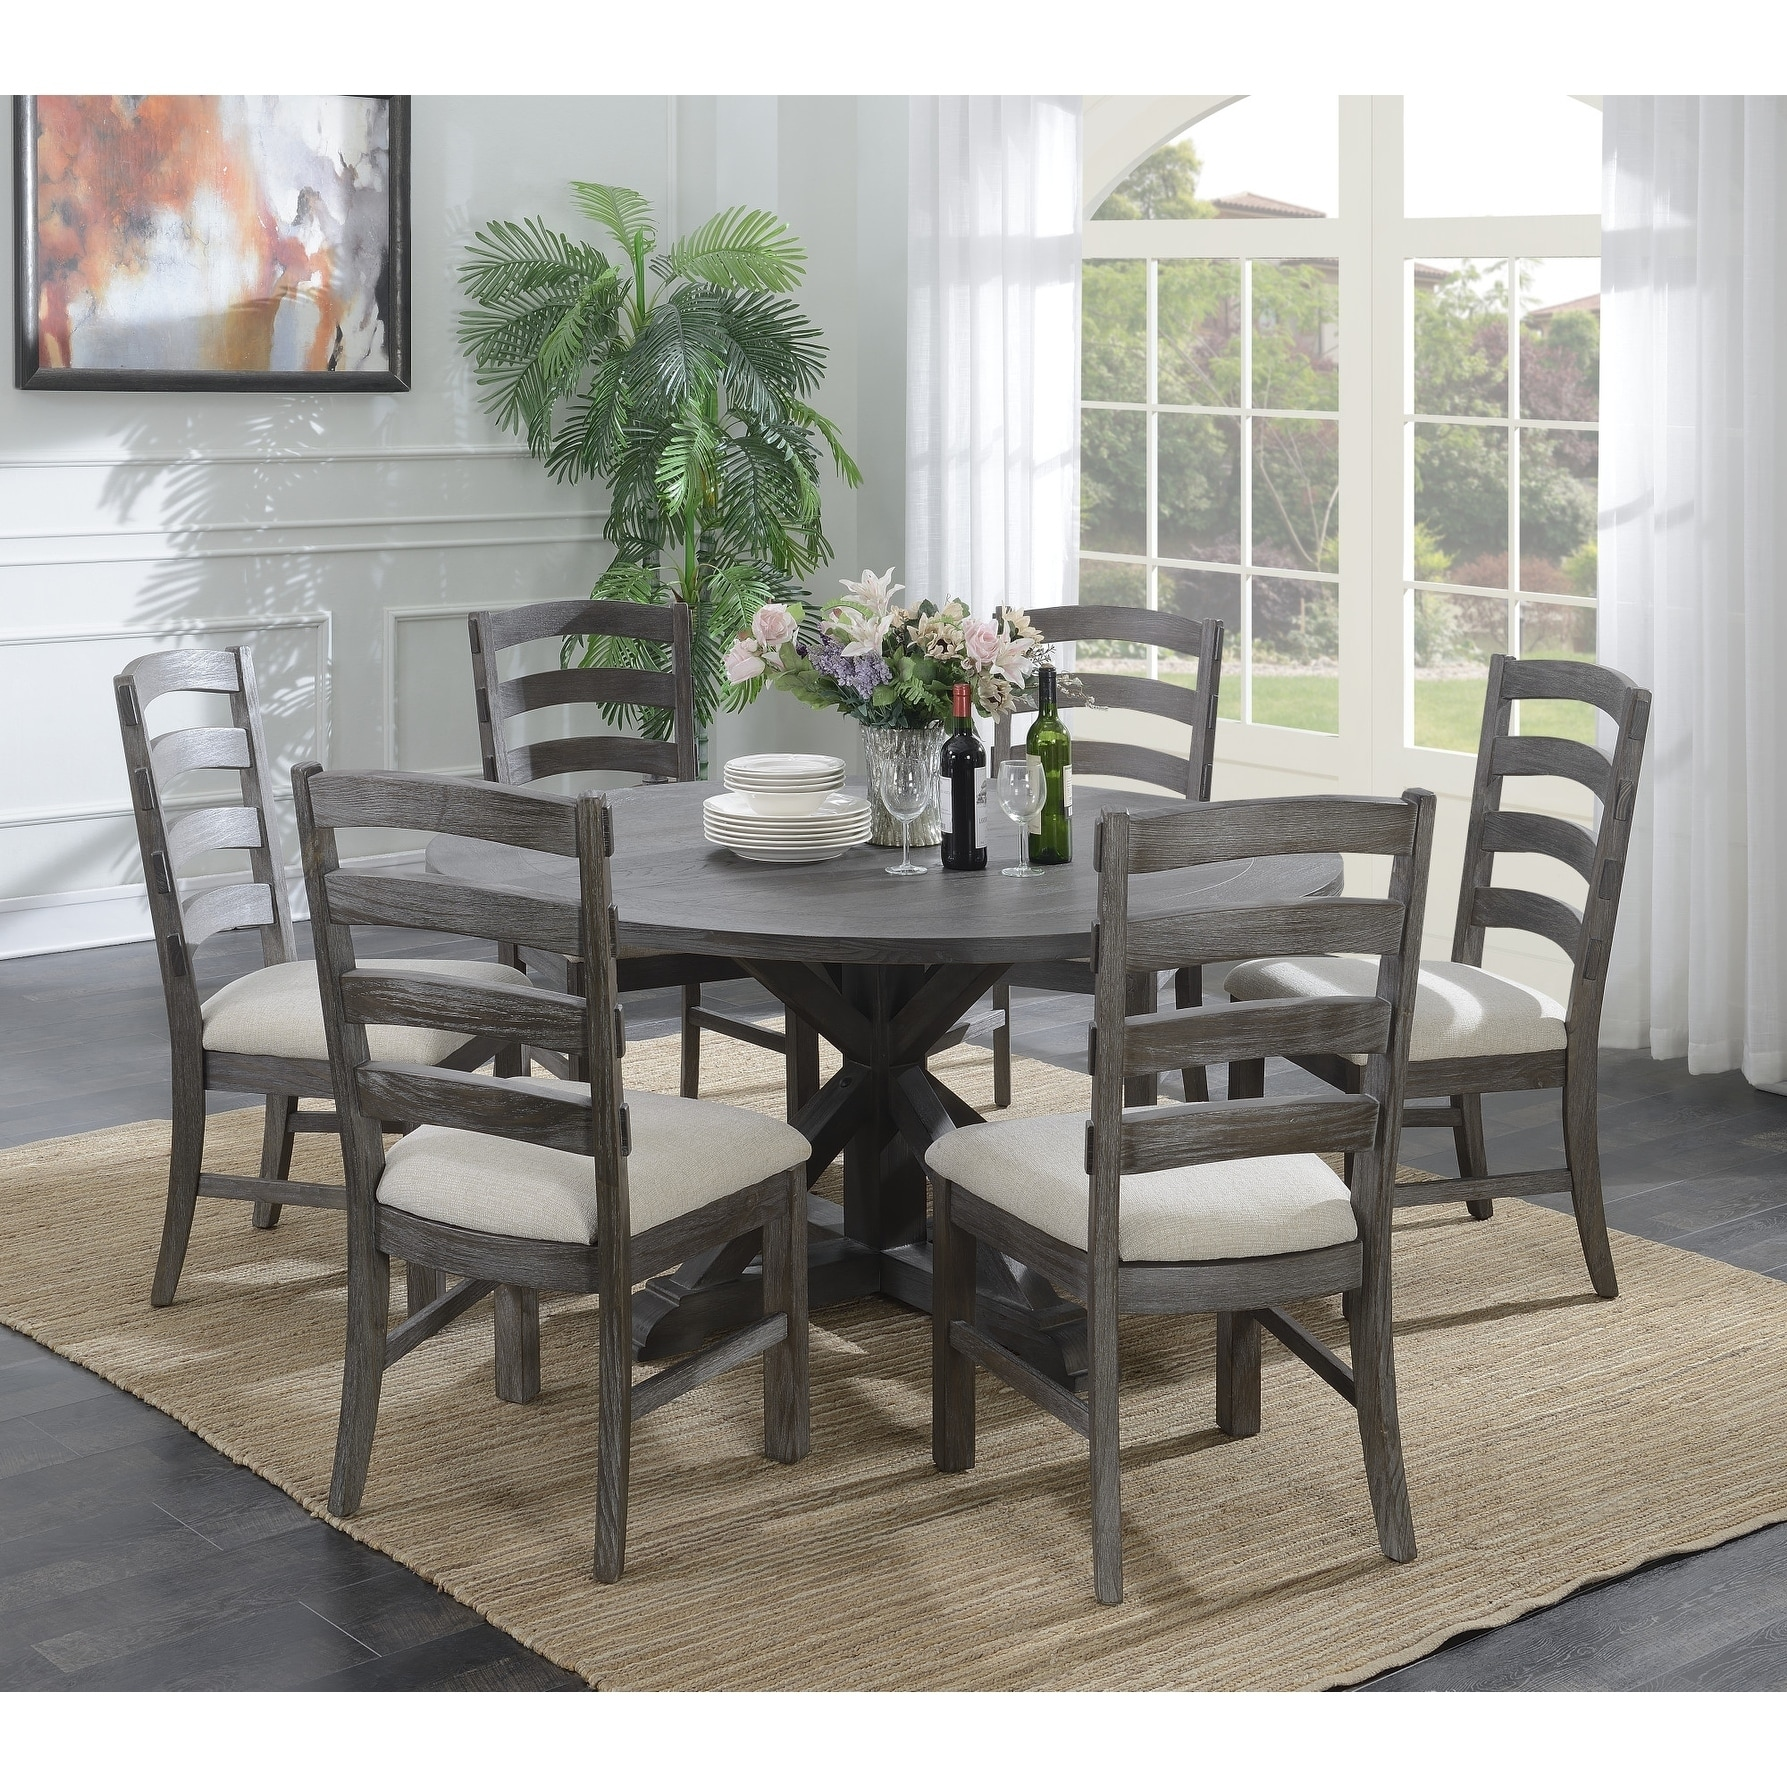 Shop emerald home paladin rustic charcoal gray round dining table rustic charcoal gray free shipping today overstock com 20338768